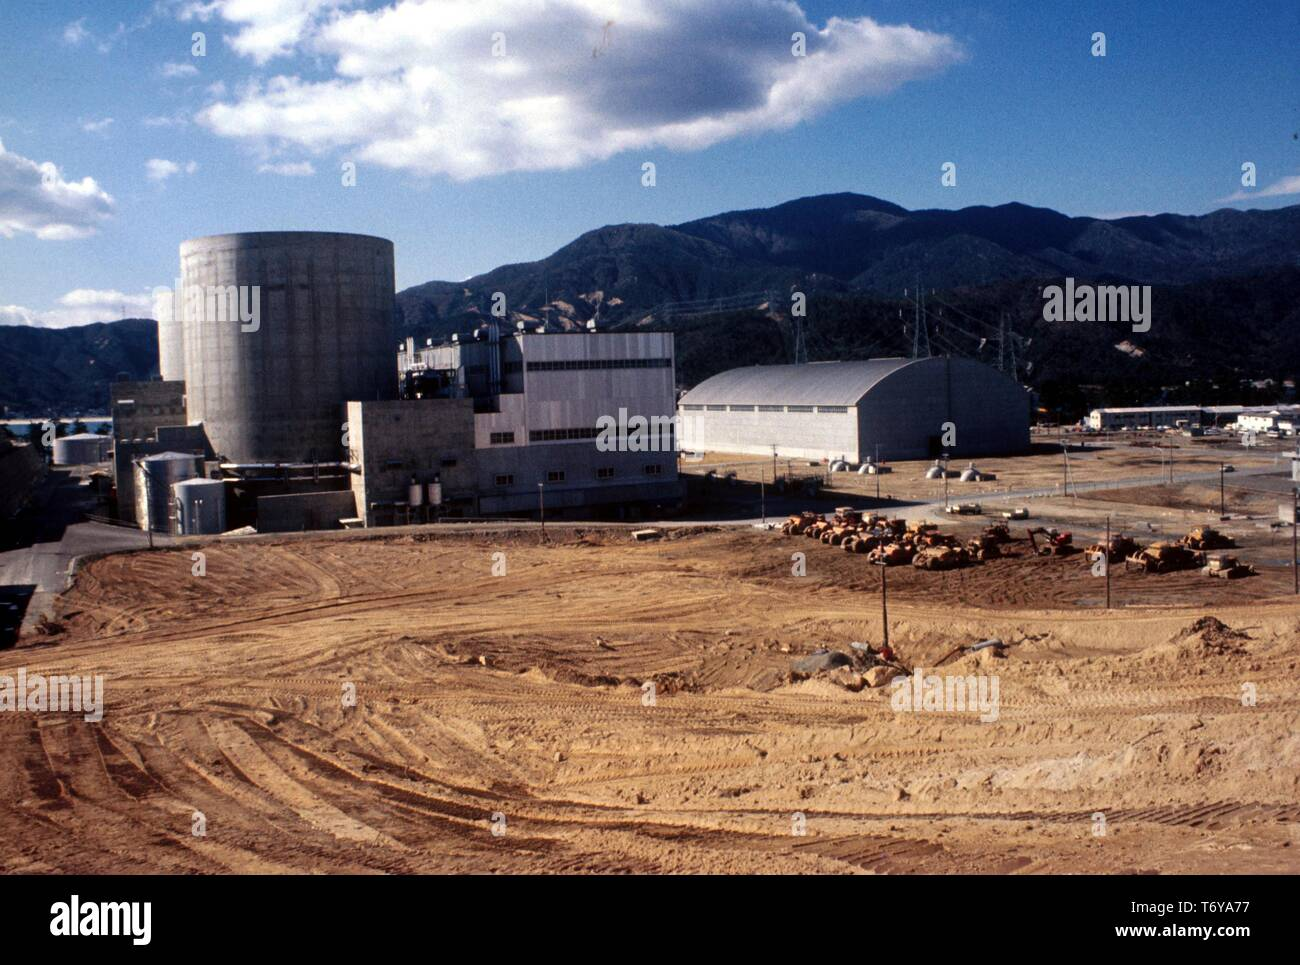 The exterior of Mihama Nuclear Power Plant, on a sunny day, with dirt and construction vehicles in the foreground, Mihama, Japan, 1975. Image courtesy US Department of Energy. () - Stock Image